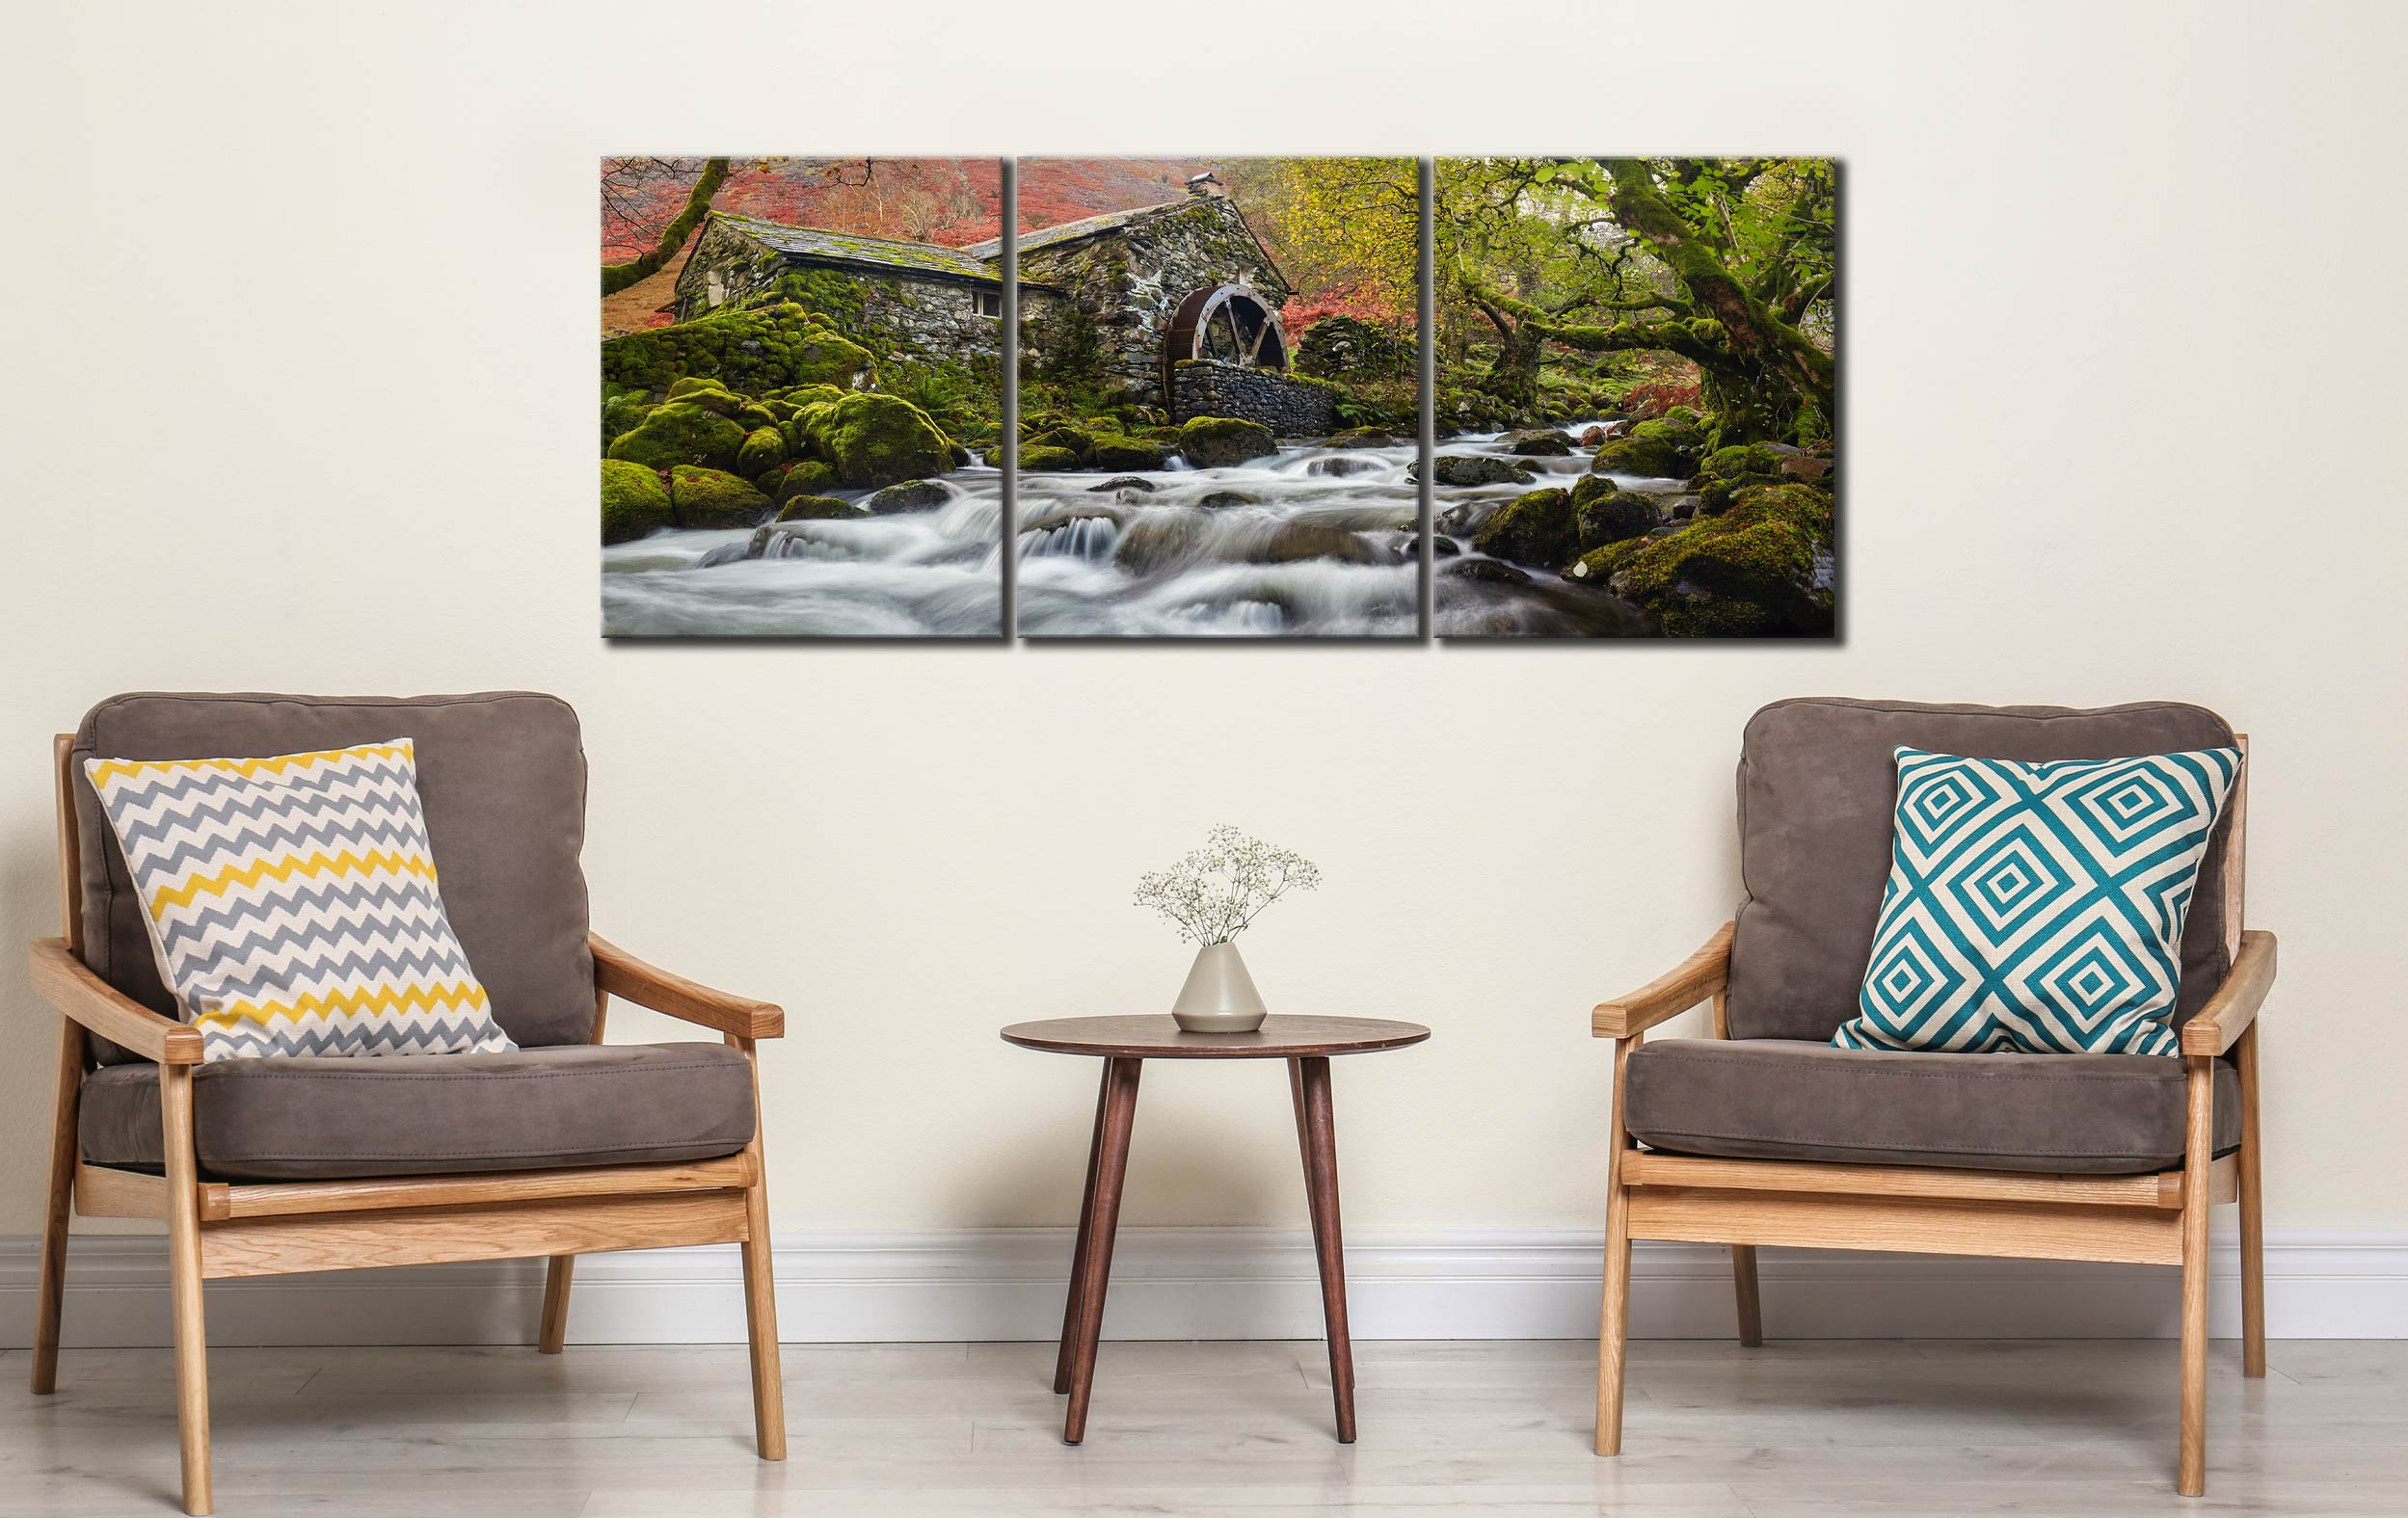 Borrowdale Mill Panorama - 3 Panel Canvas on Wall